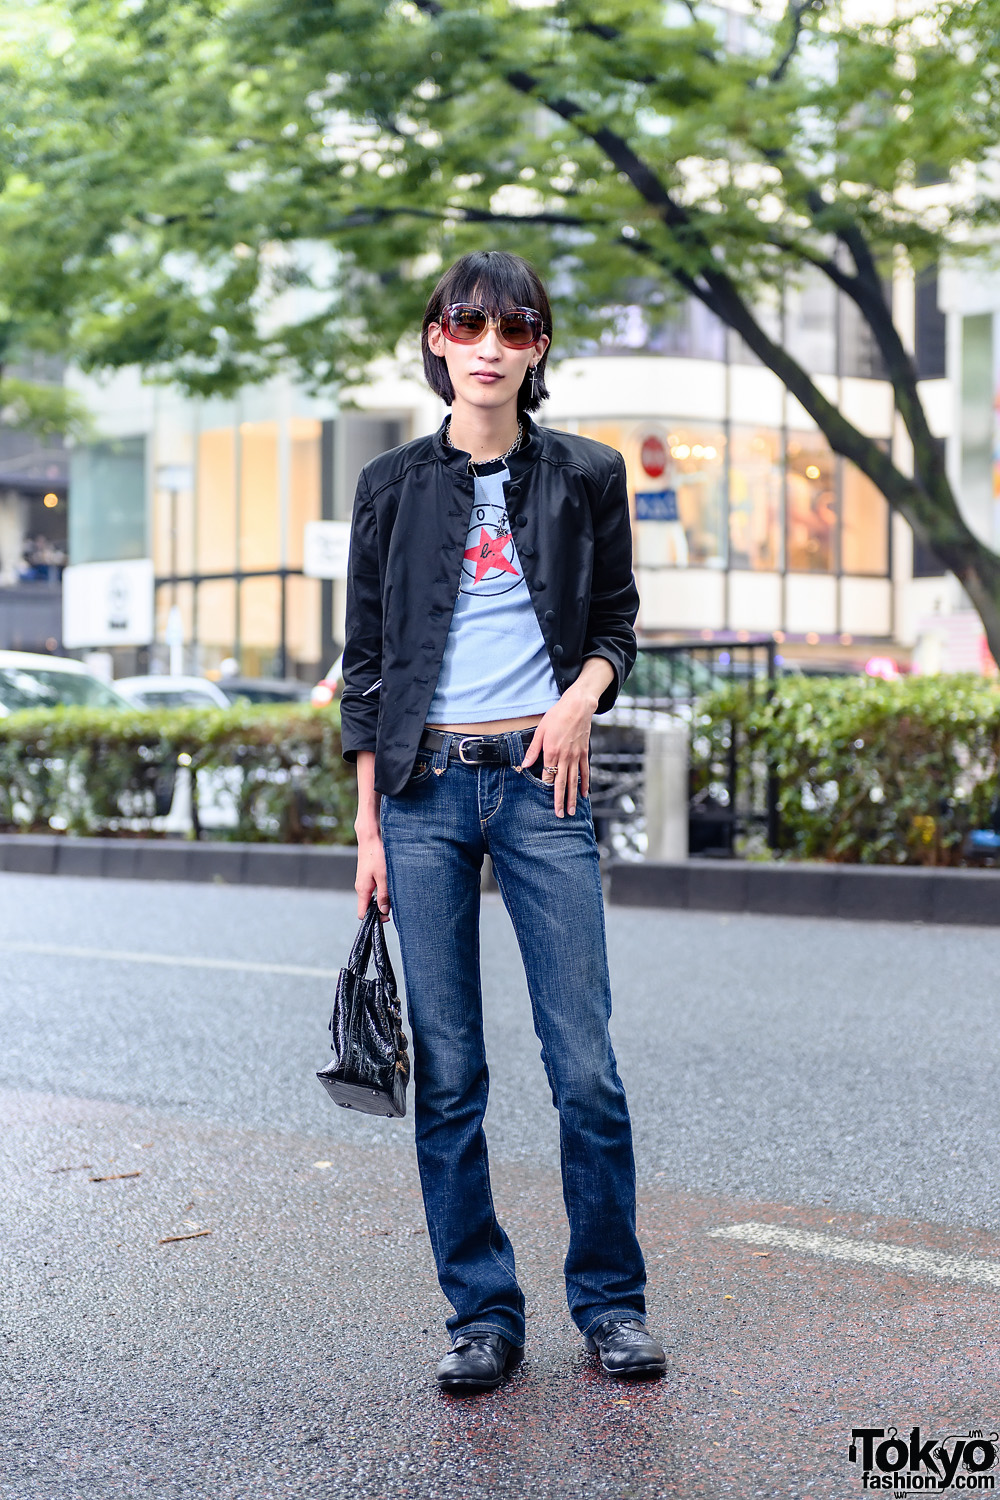 Japanese Musician's Rock Style w/ Fringed Bob, Oversized Sunglasses, Black Jacket, Slim-Fit Jeans & Lace-Up Loafers